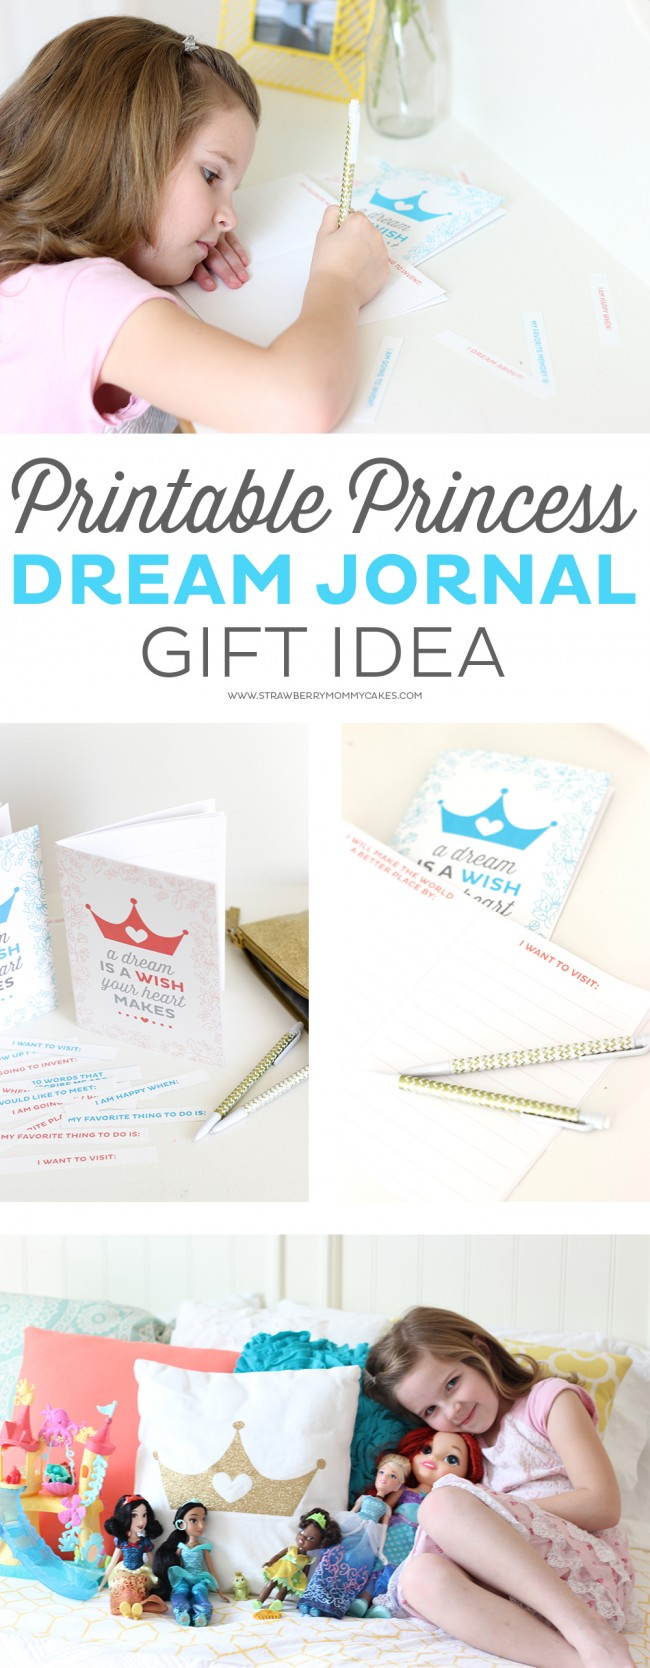 I gave my daughter this Printable Princess Dream Journal to go along with some new Disney Princess dolls and she LOVED it! She can write about her goals and dreams in this pretty notebook.